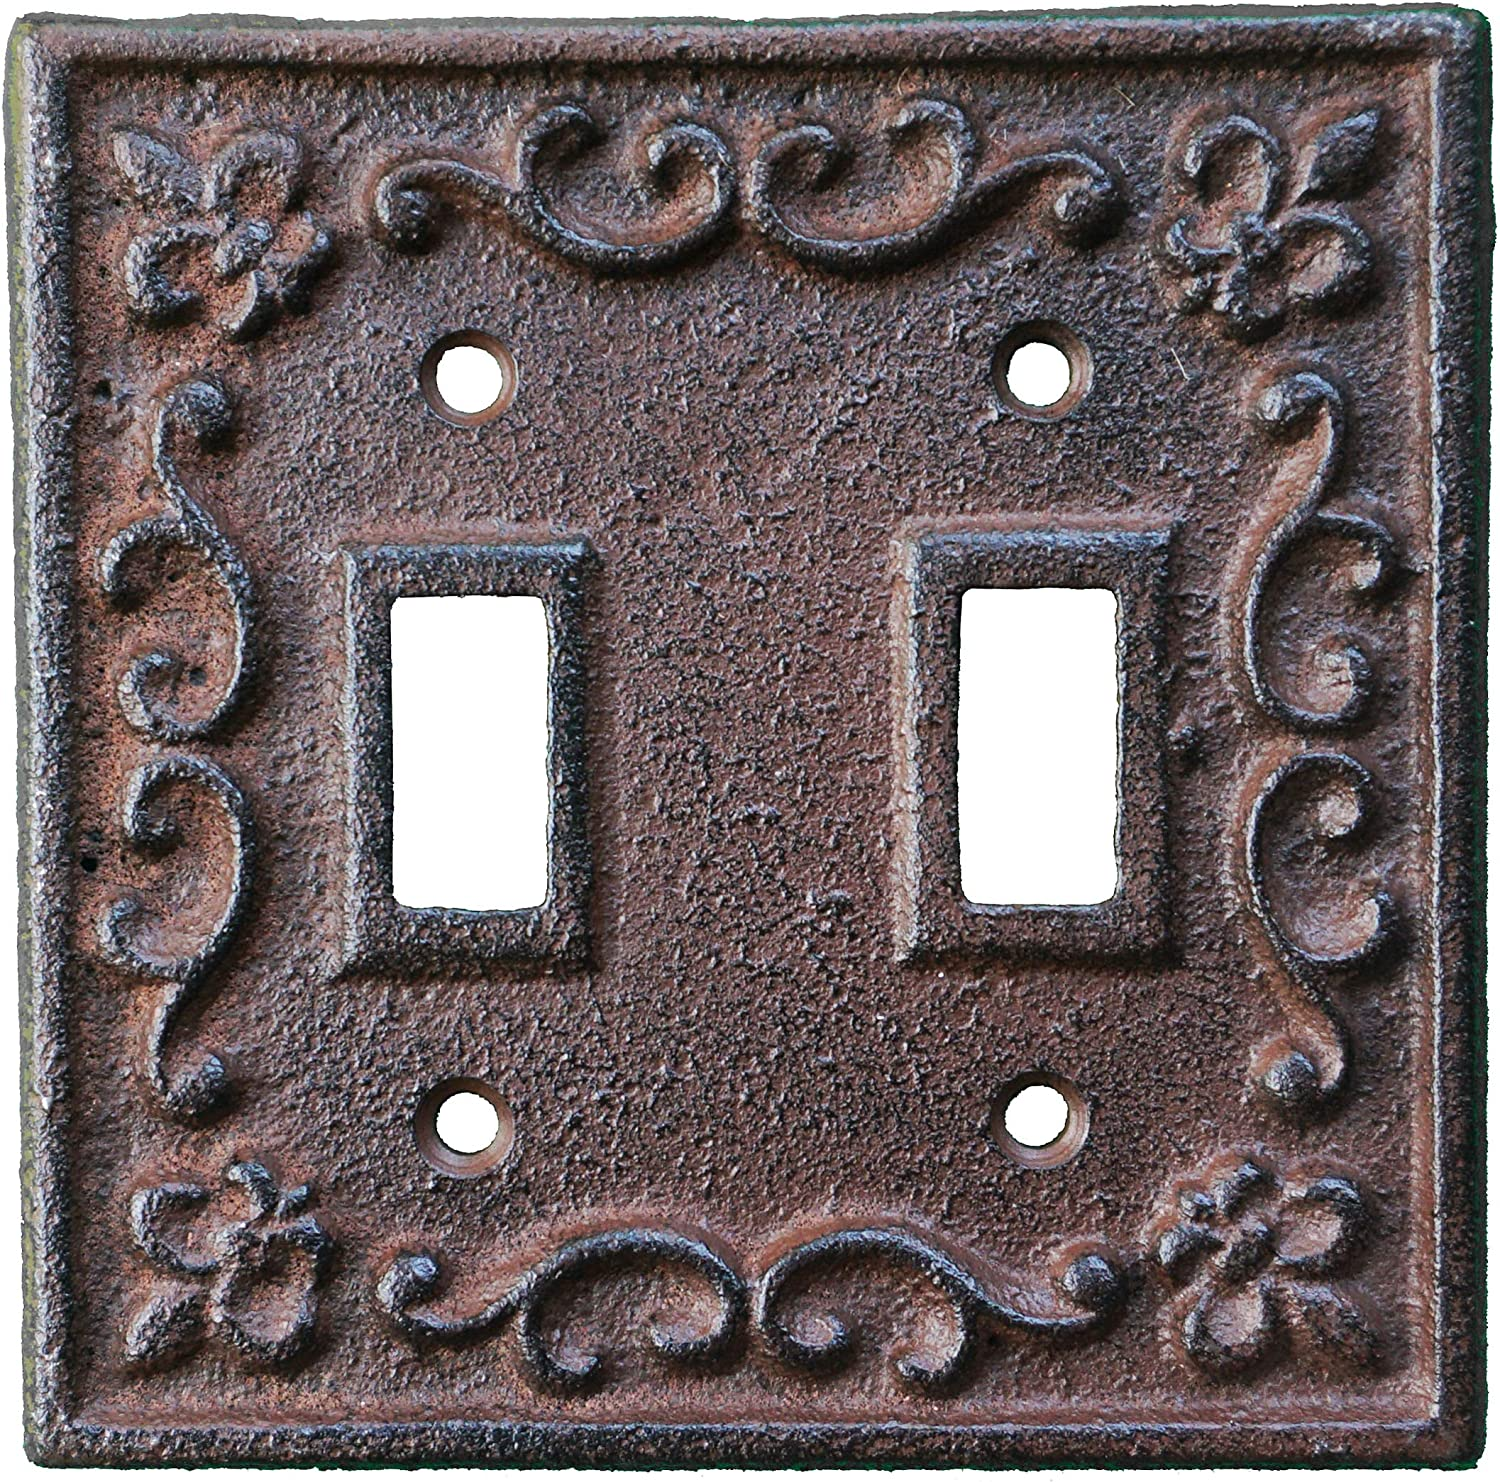 Lulu Decor Fleur De Lis Cast Iron Switch Plate In Antique Rustic Brown Finish Perfect For Any Room Or Office Space Furniture Decor